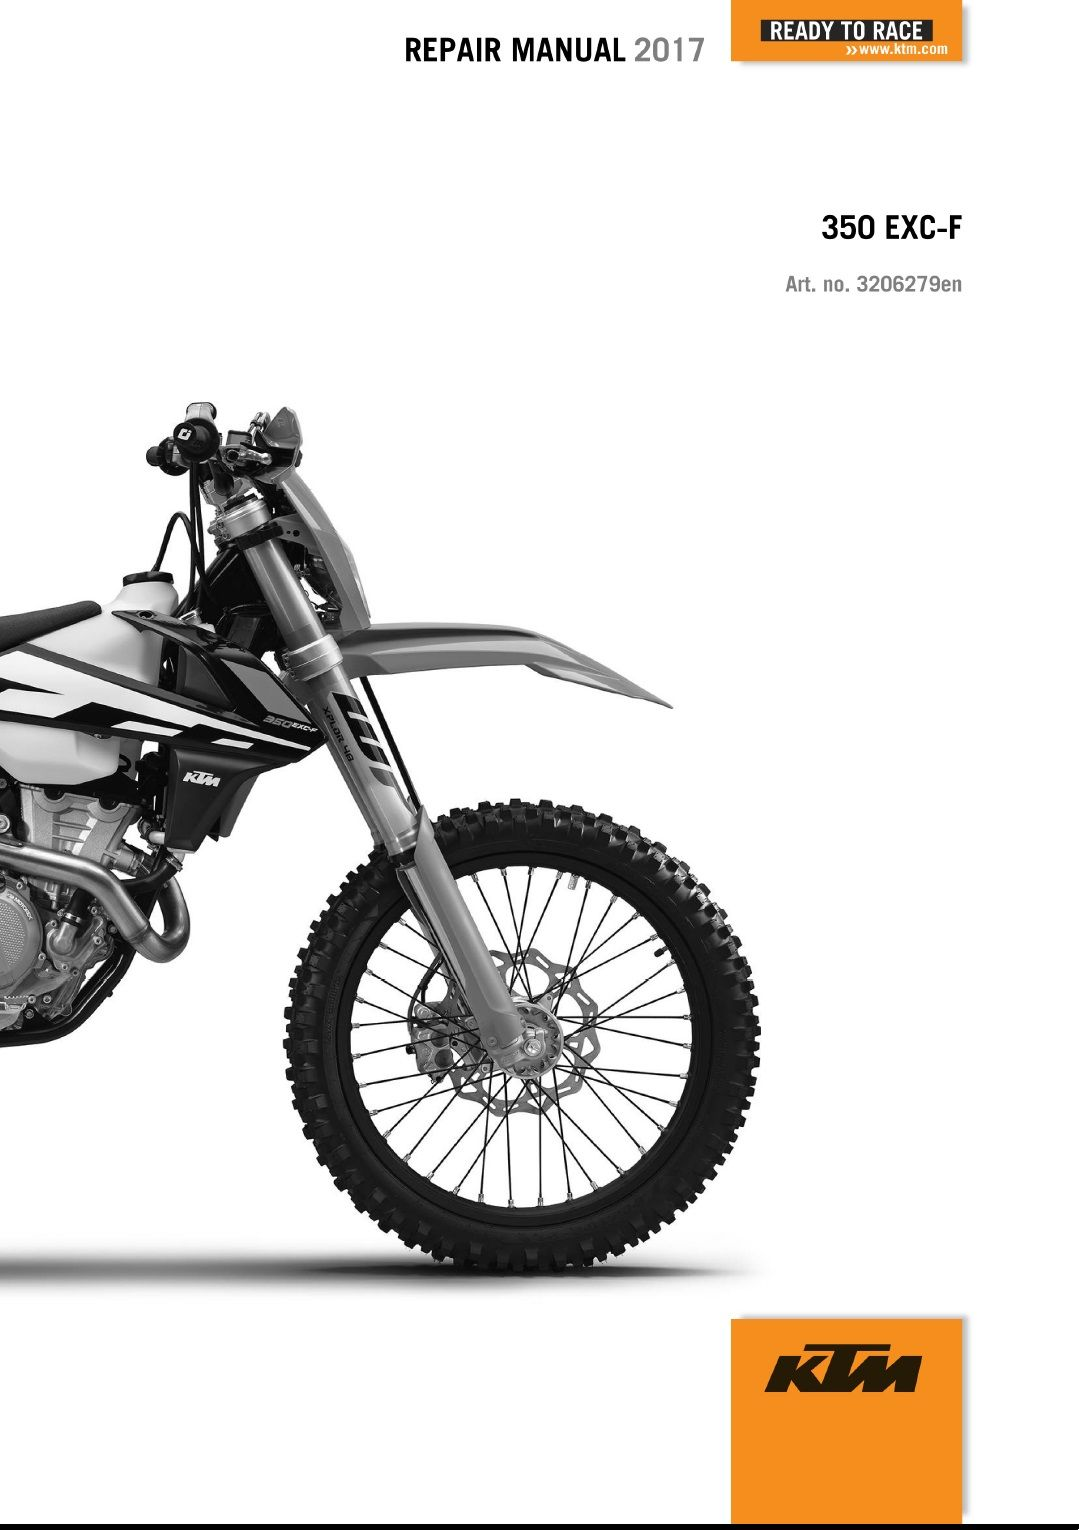 For All Your Genuine Motocross Bike Service Repair Manuals Go To Manual  Store https:/